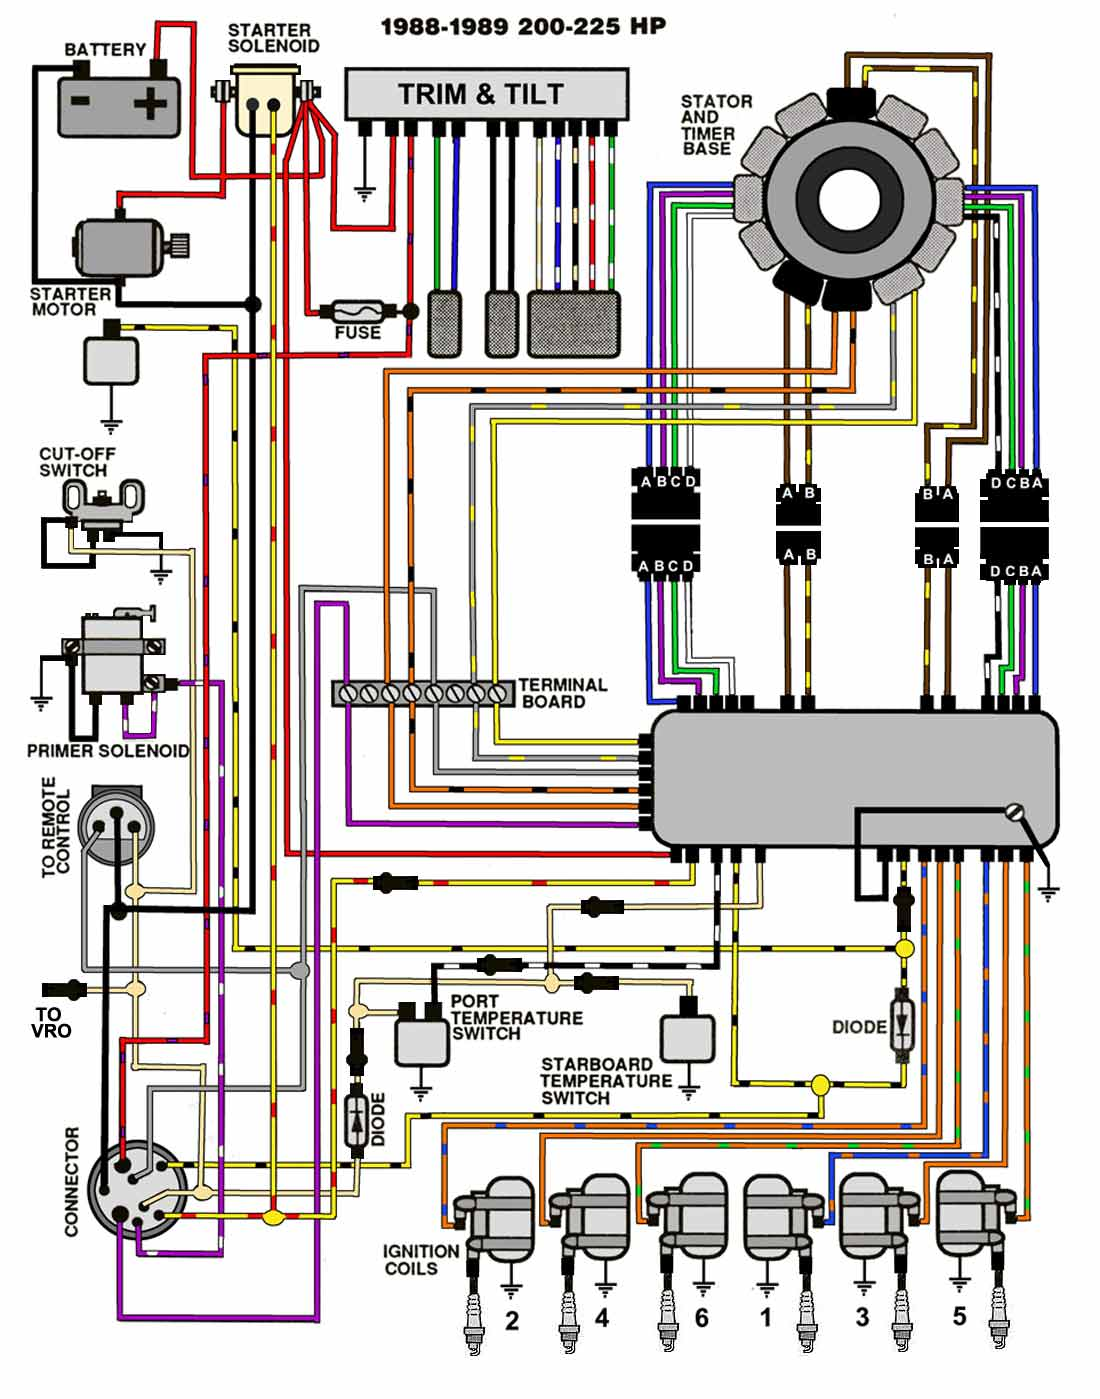 1988_89_200_225 johnson outboard wiring diagram johnson wiring diagrams collection  at bakdesigns.co